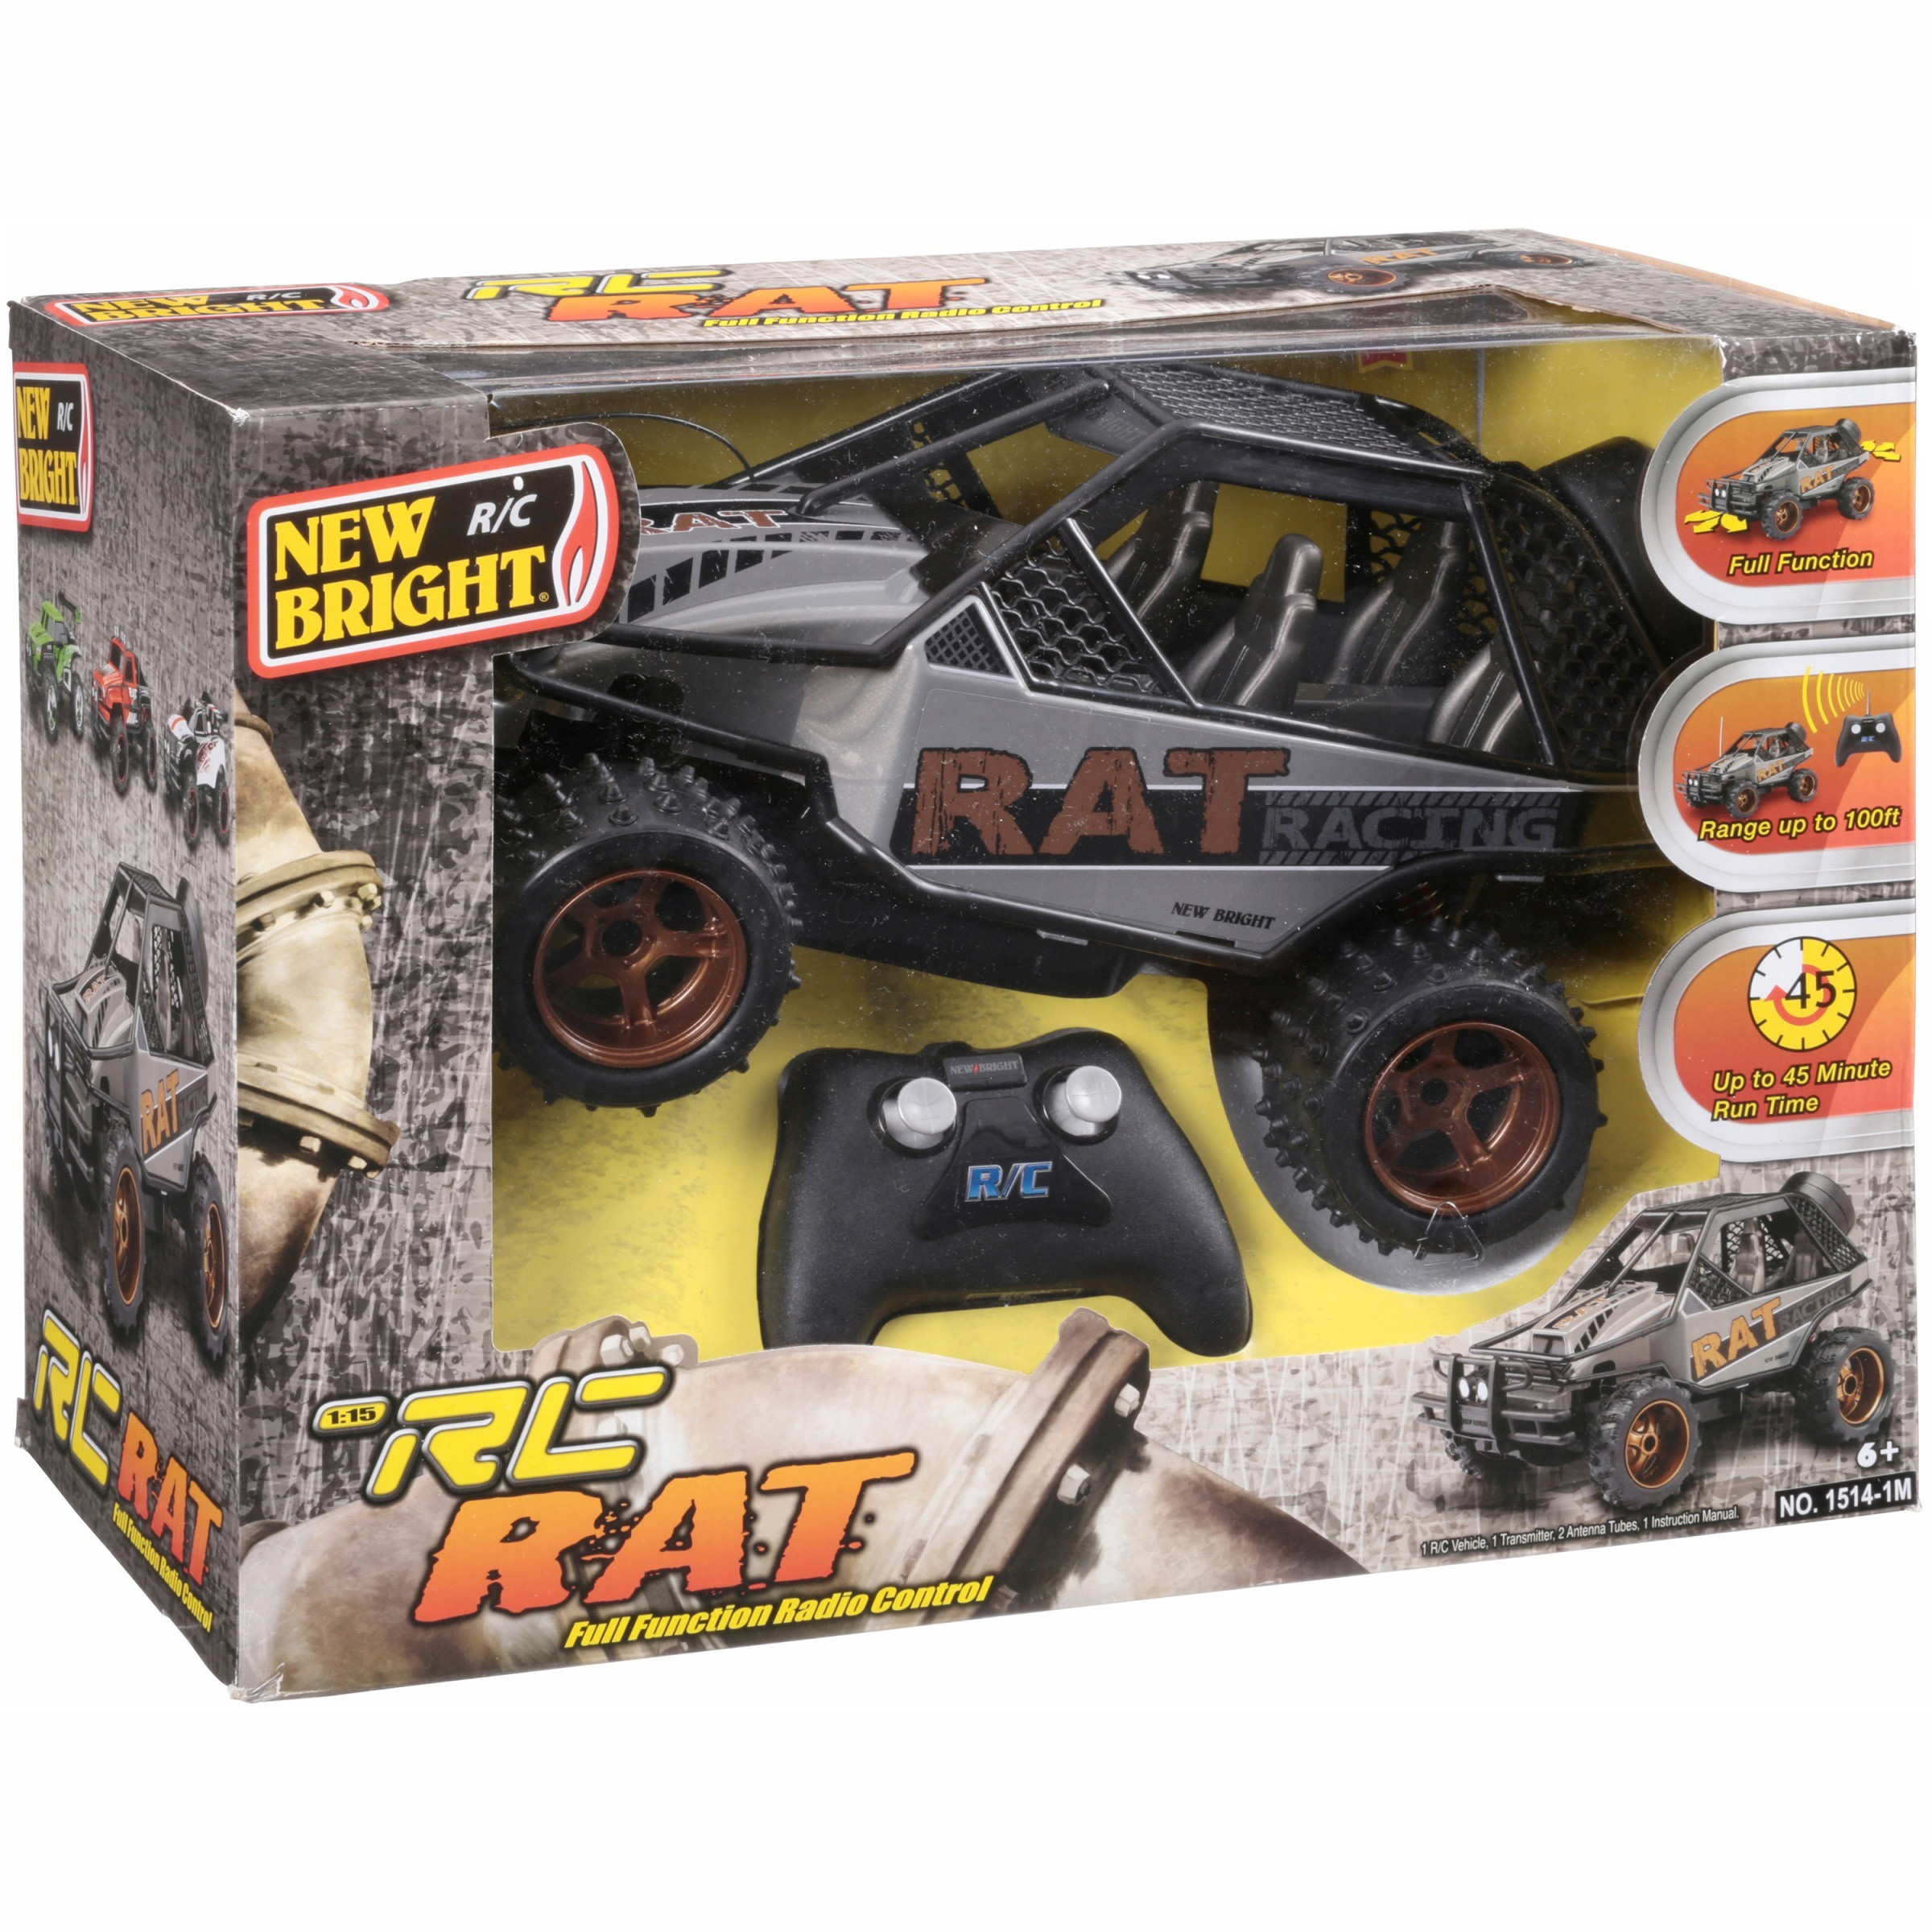 3 Pallets of Collectible Figures, RC Vehicles & More Ext. Retail $16,165, Forest Park, GA, 300 Miles Free Shipping